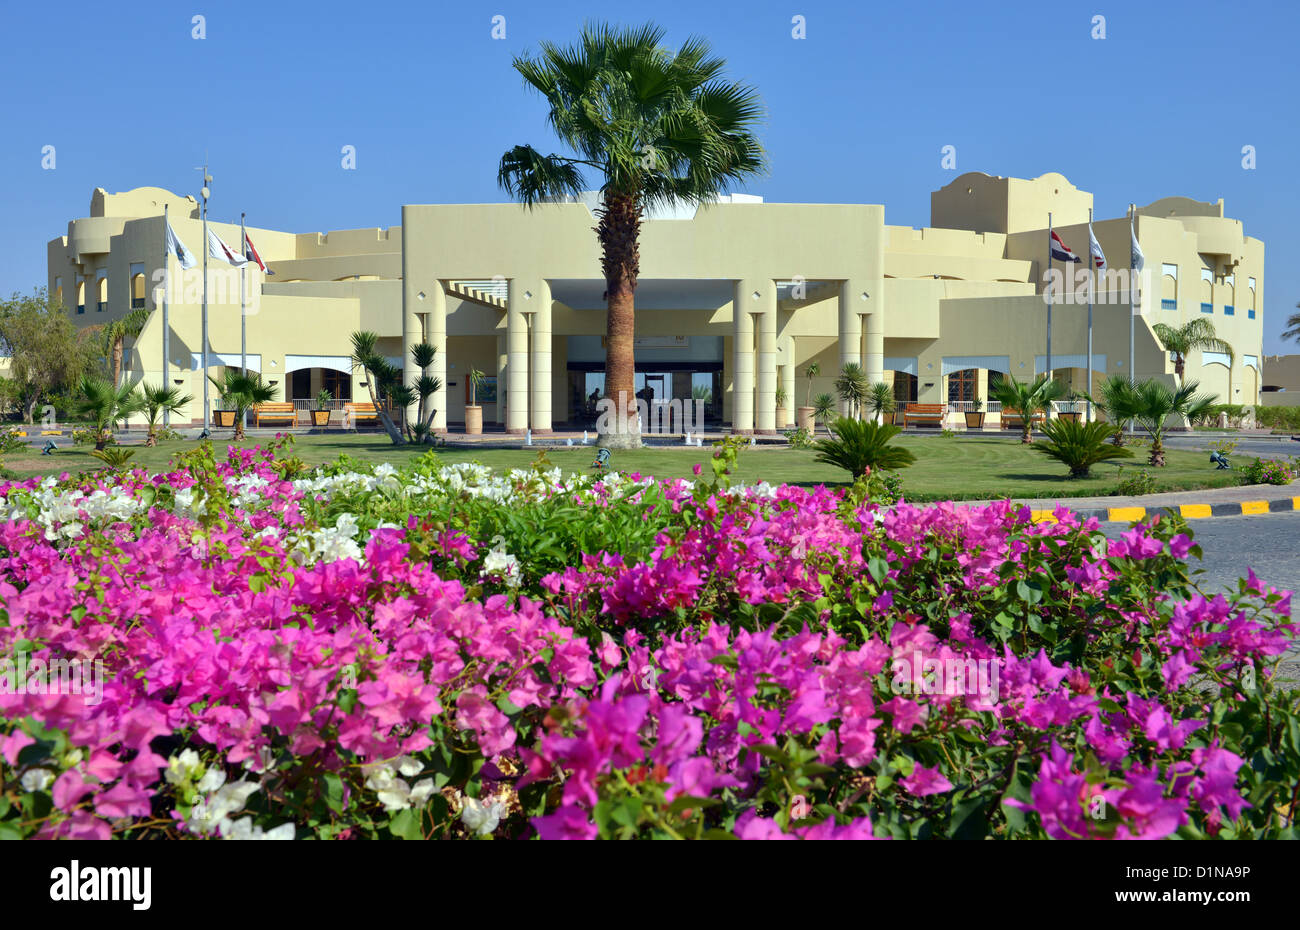 The Marriott Hotel, Taba Heights holiday resort complex at Sinai in Egypt. - Stock Image